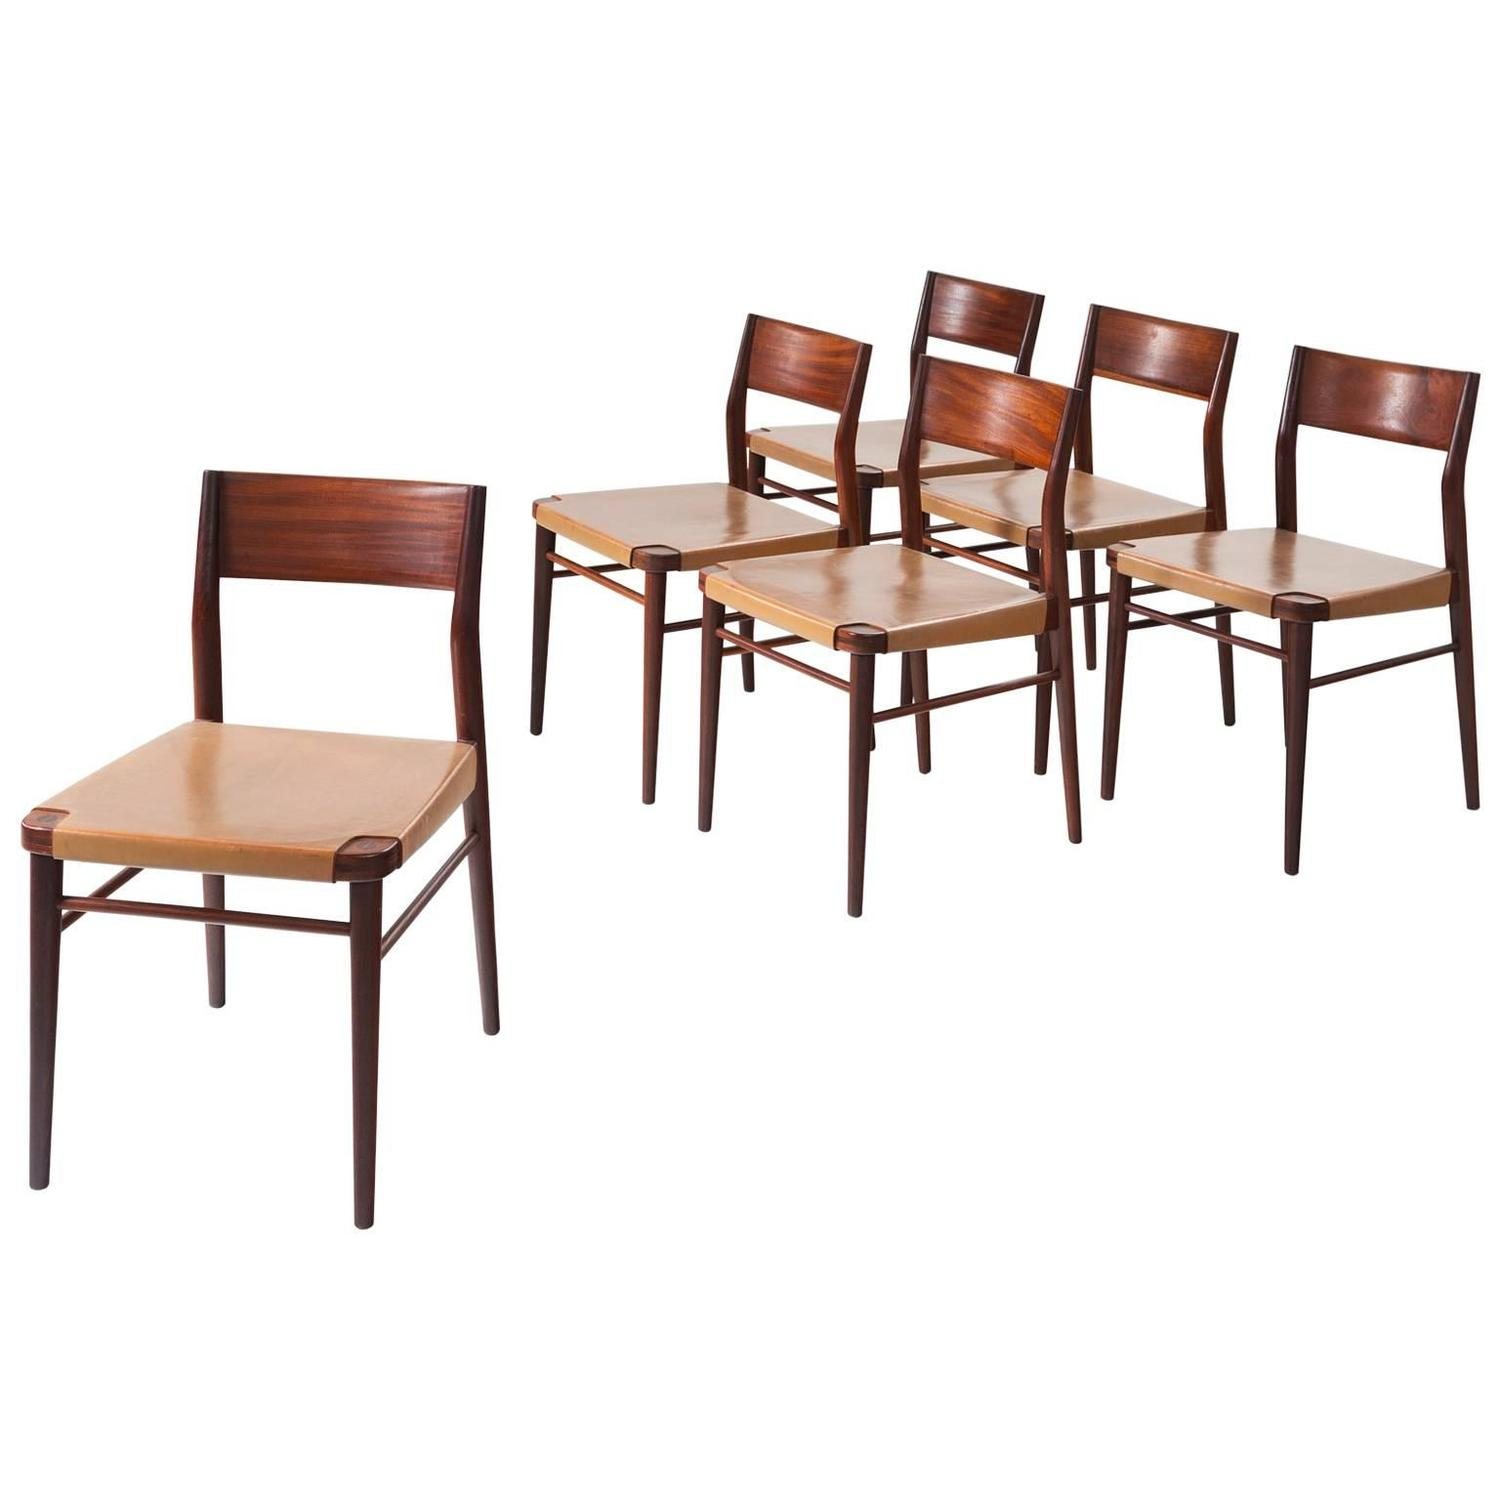 Italian Dining Chairs Set Of Six Italian Dining Chairs In Mahogany And Natural